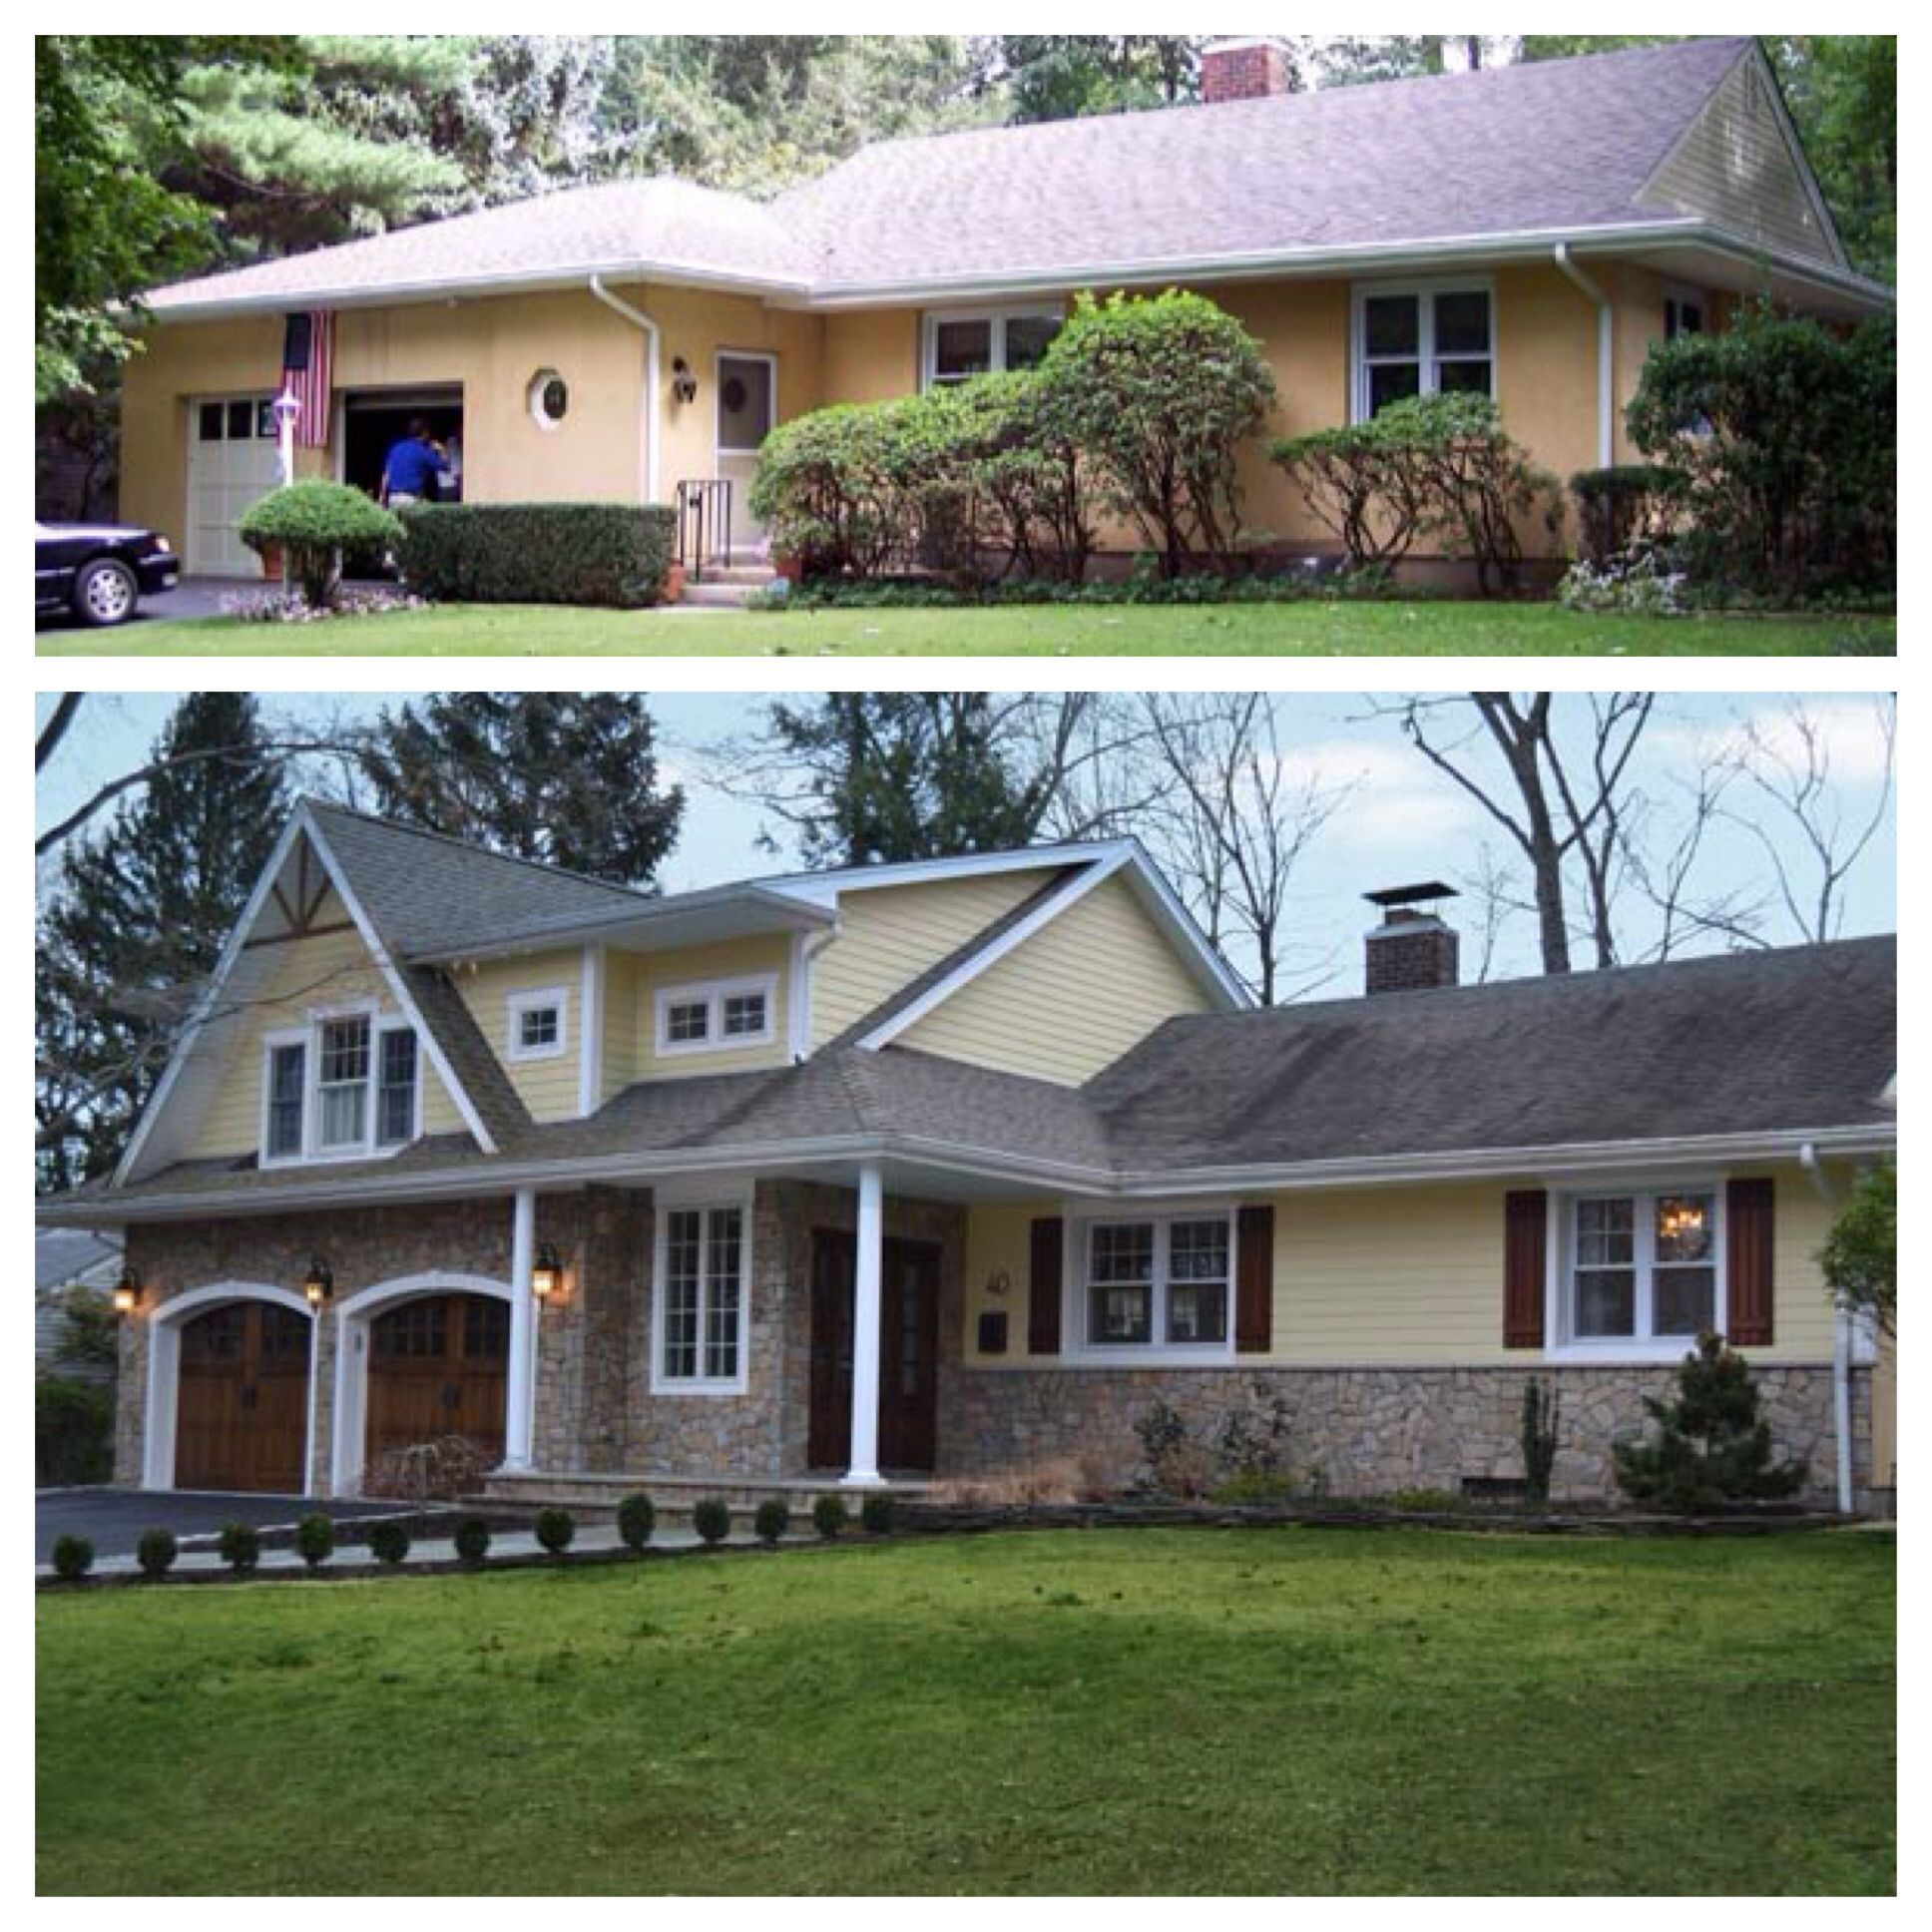 Before And After Garage Remodels: Before And After Curb Appeal. Change Roofline On 1 Level